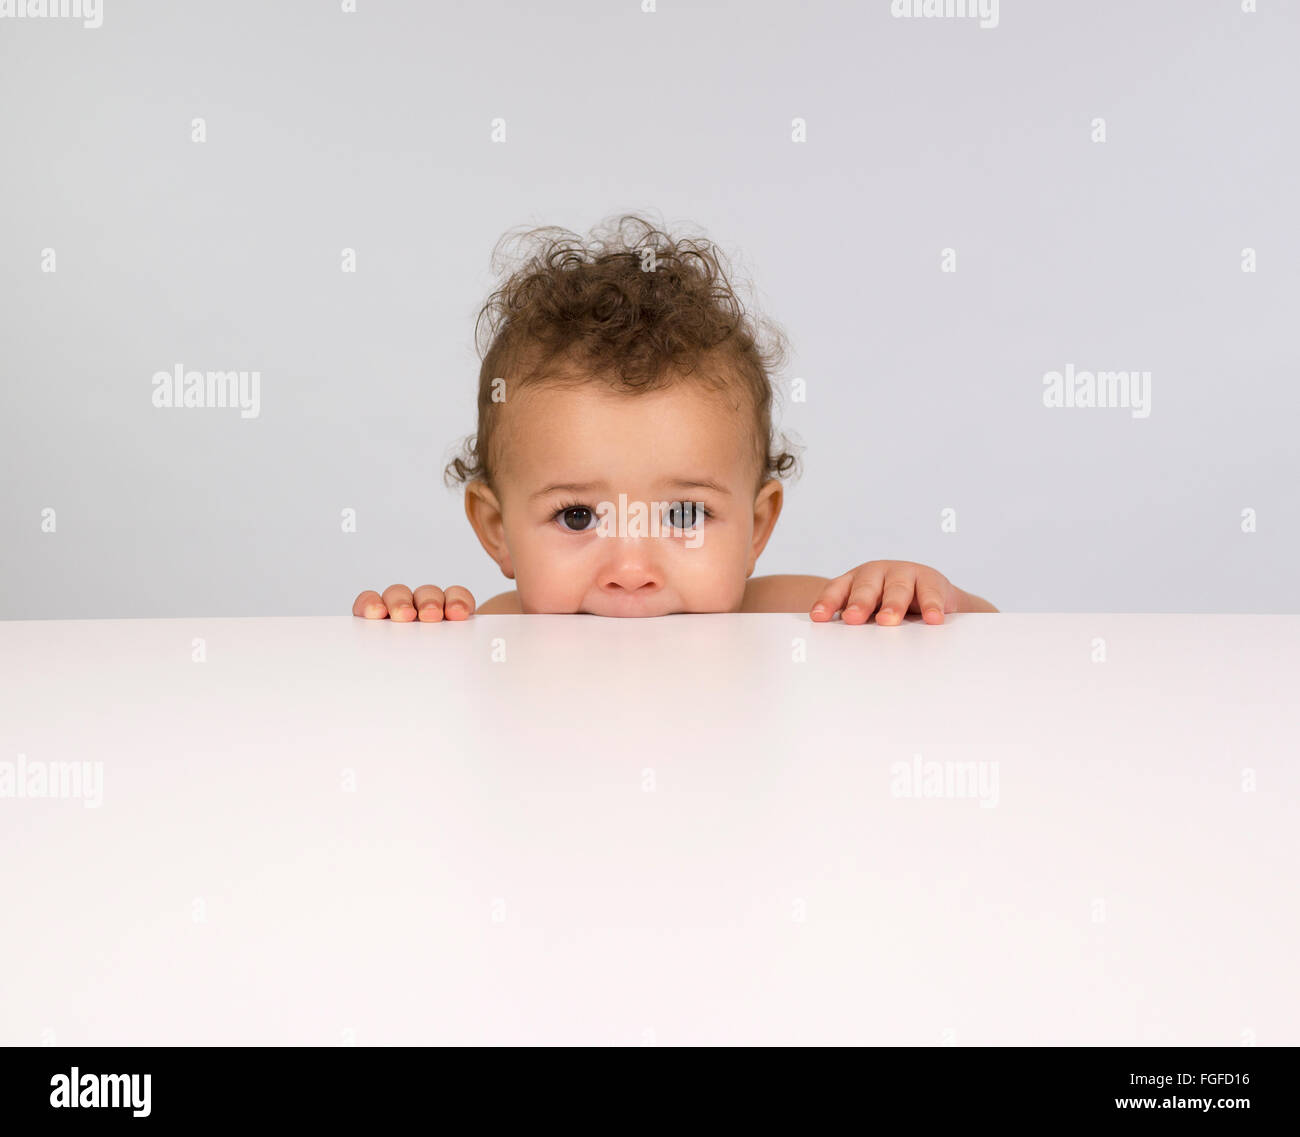 Cute baby boy peeping over a table top - Stock Image